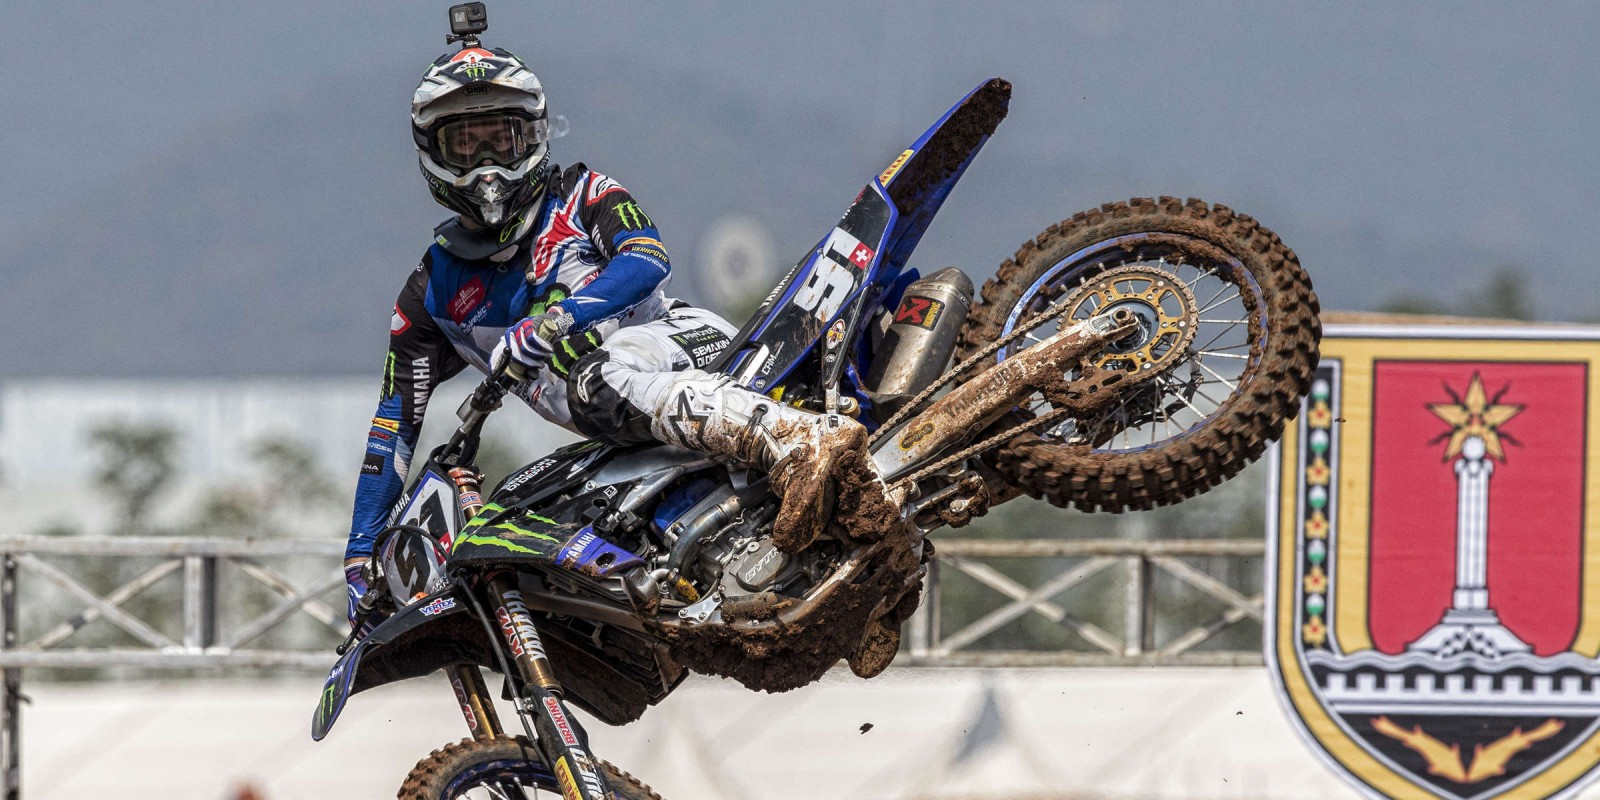 Jeremy Seewer at the 2019 Grand Prix of Asia